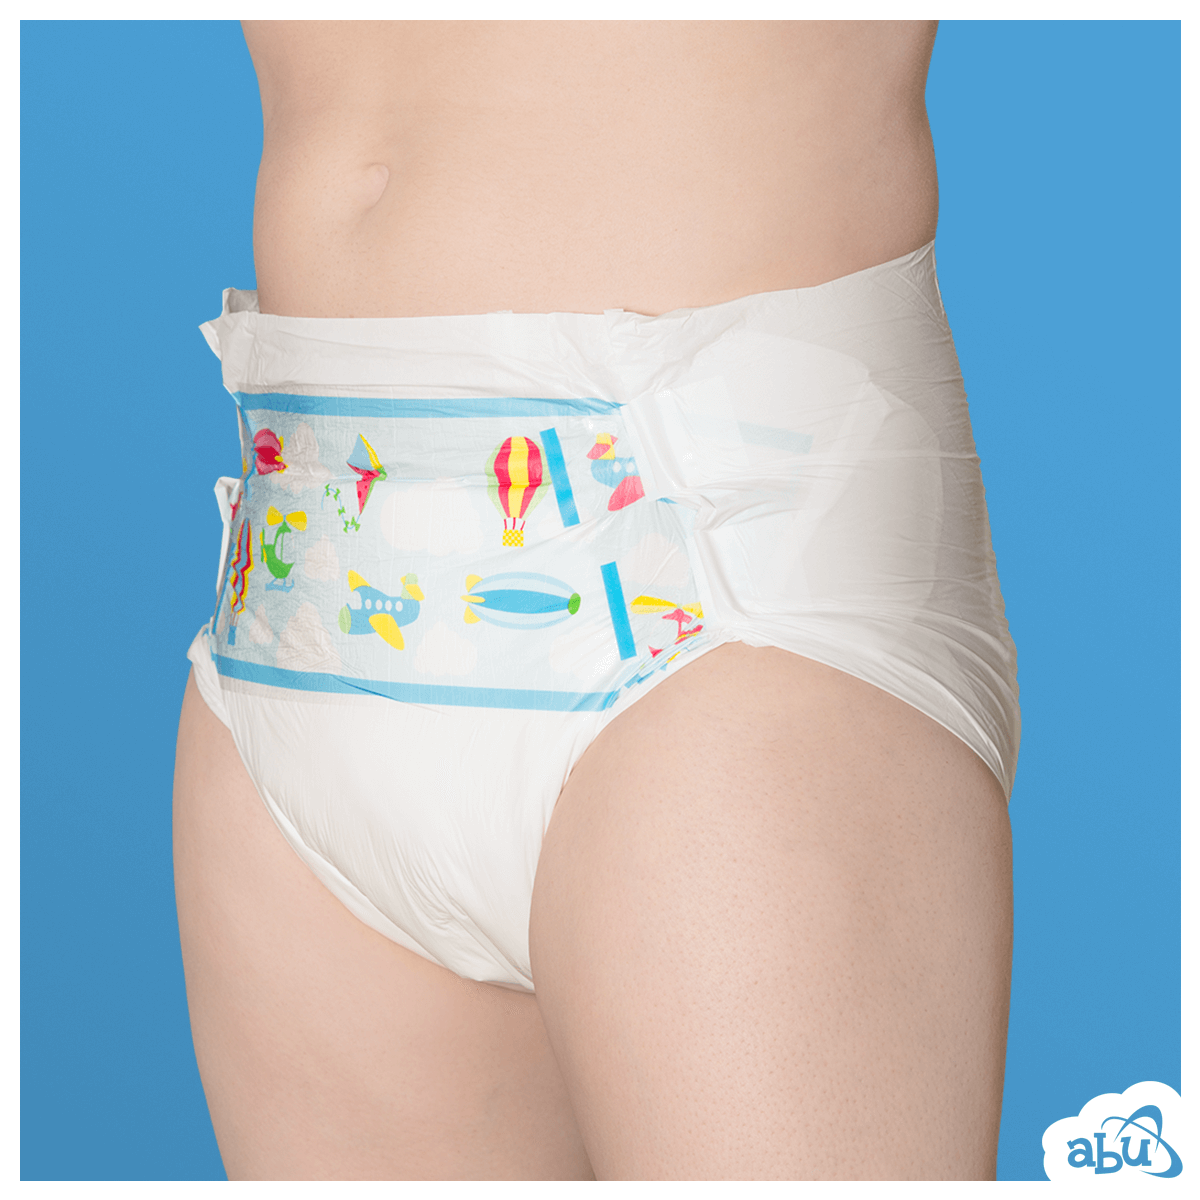 ABUniverse ABU PreSchool Plastic Backed Diapers Nappies ABDL - Pack of 10 9